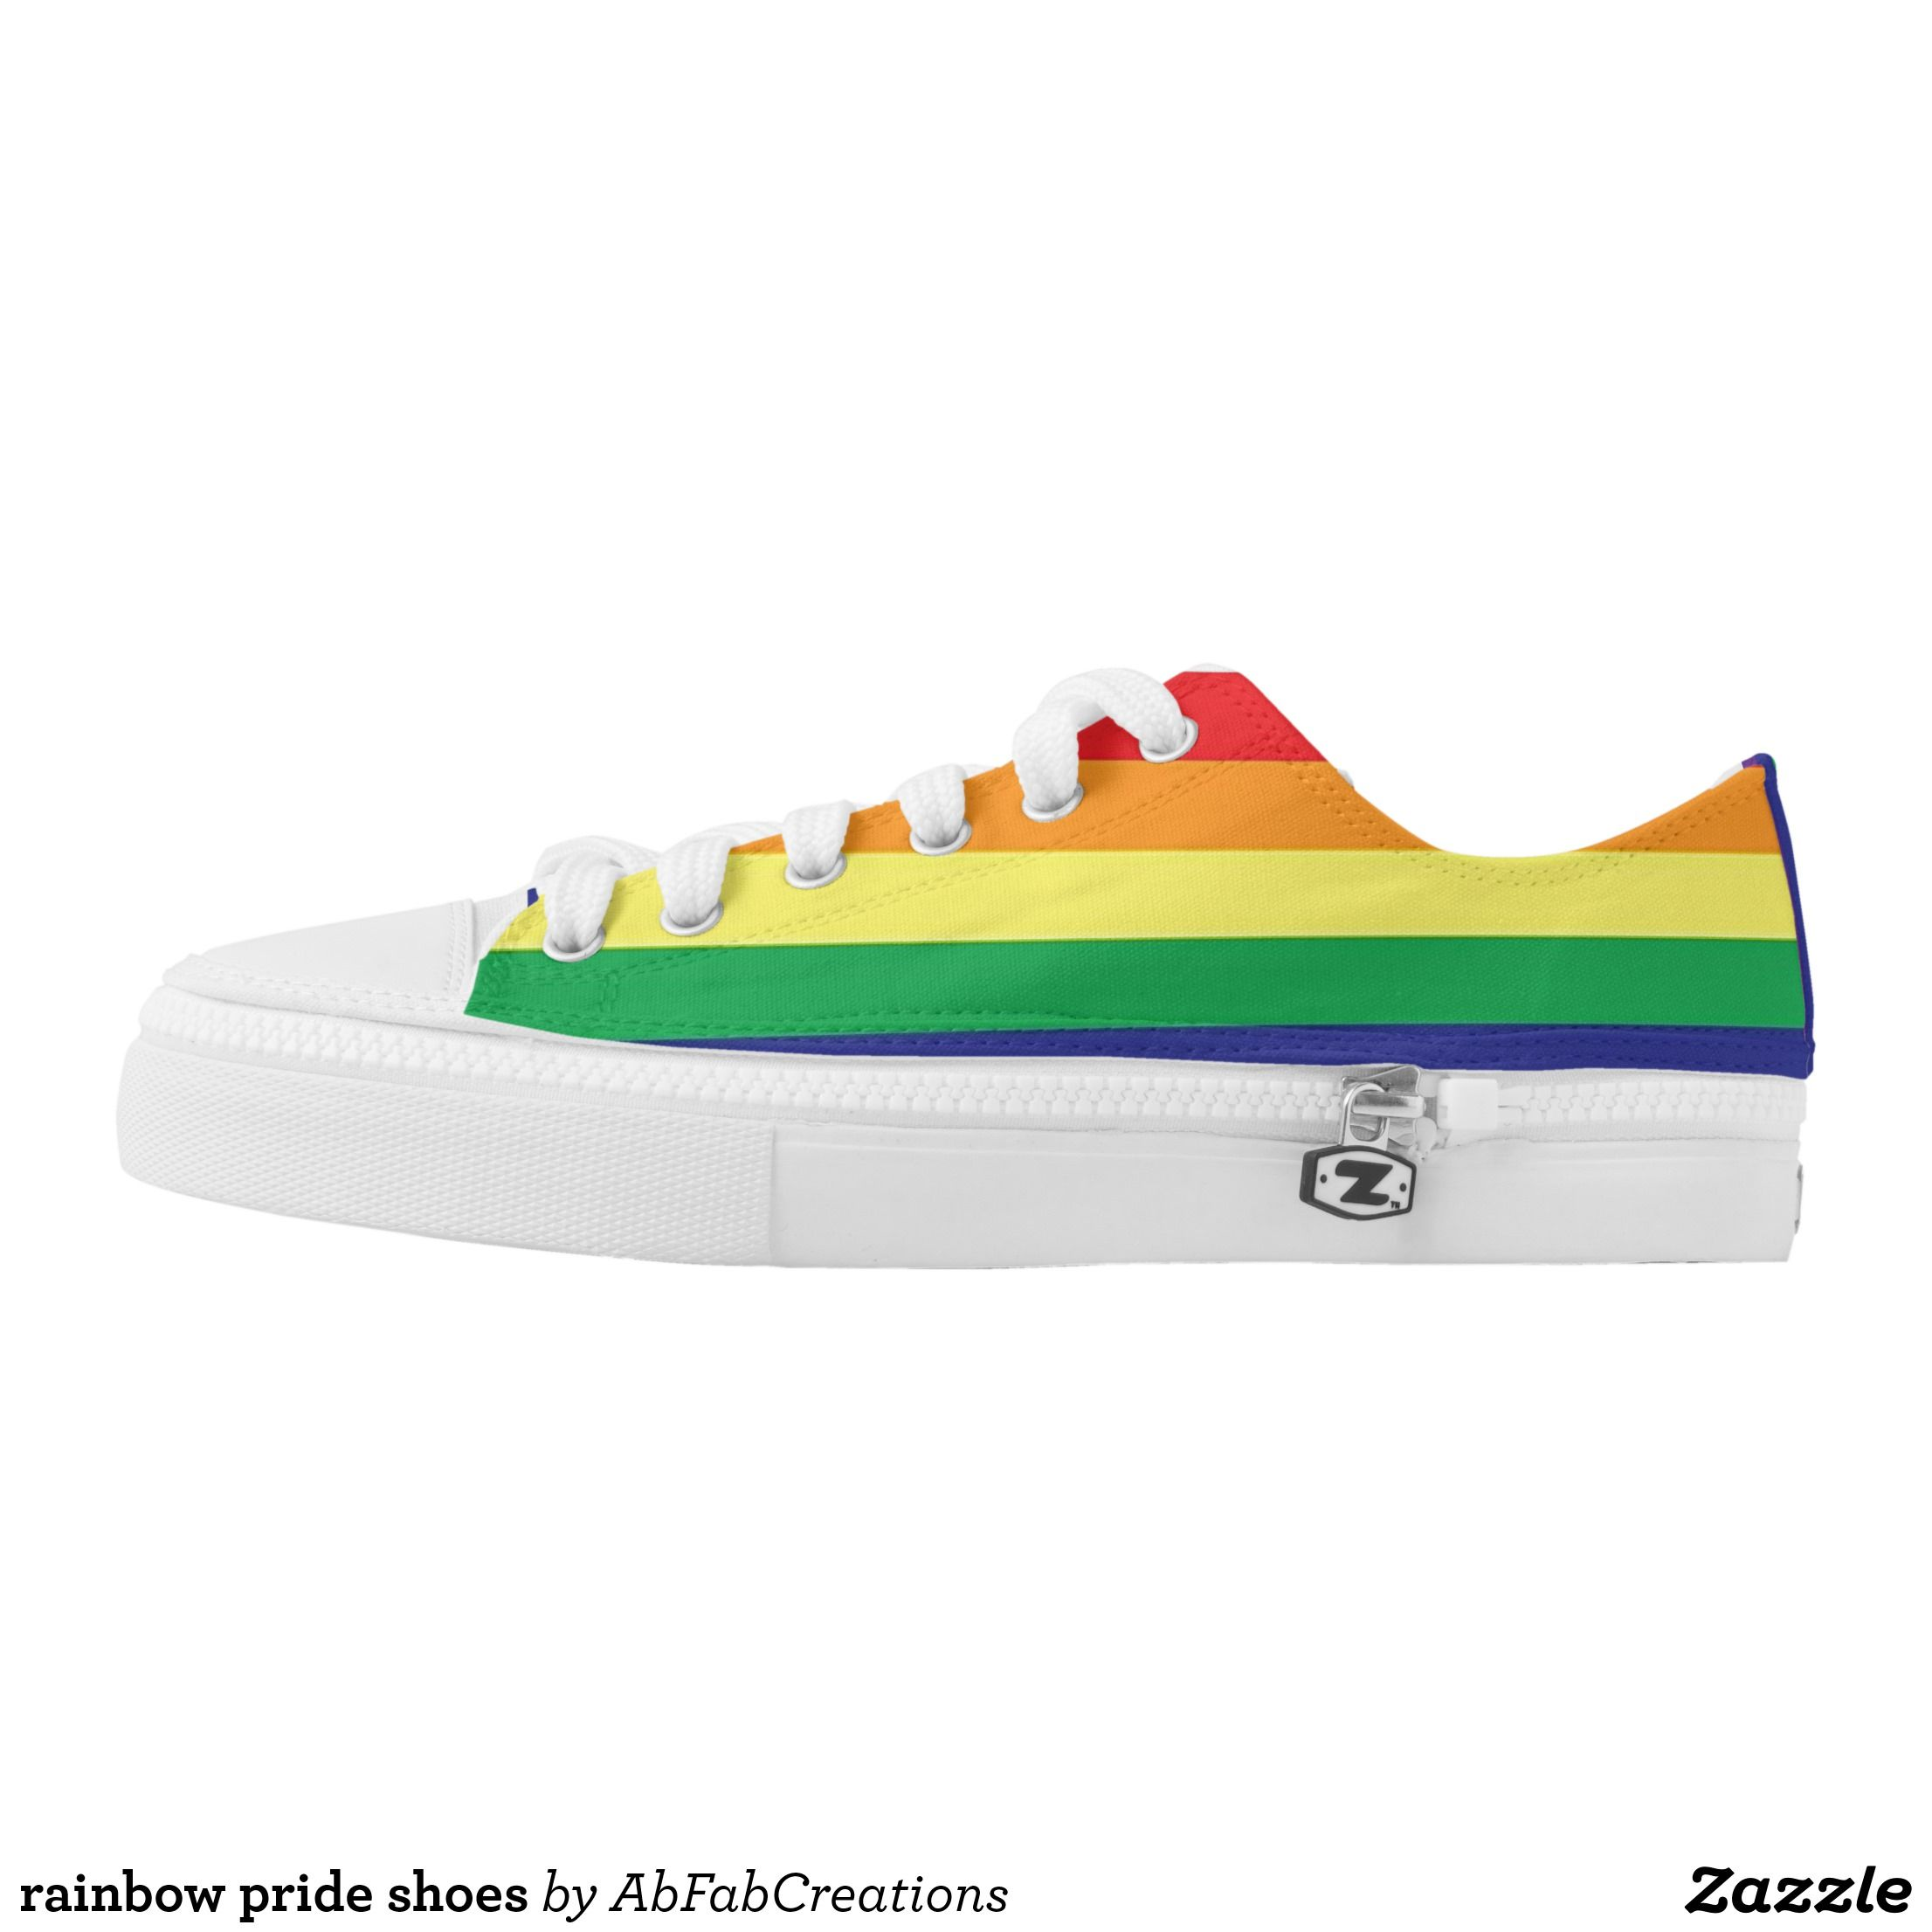 b118cf7fcb77 rainbow pride shoes - Canvas-Top Rubber-Sole Athletic Shoes By Talented  Fashion And Graphic Designers - #shoes #sneakers #footwear #mensfashion  #apparel ...